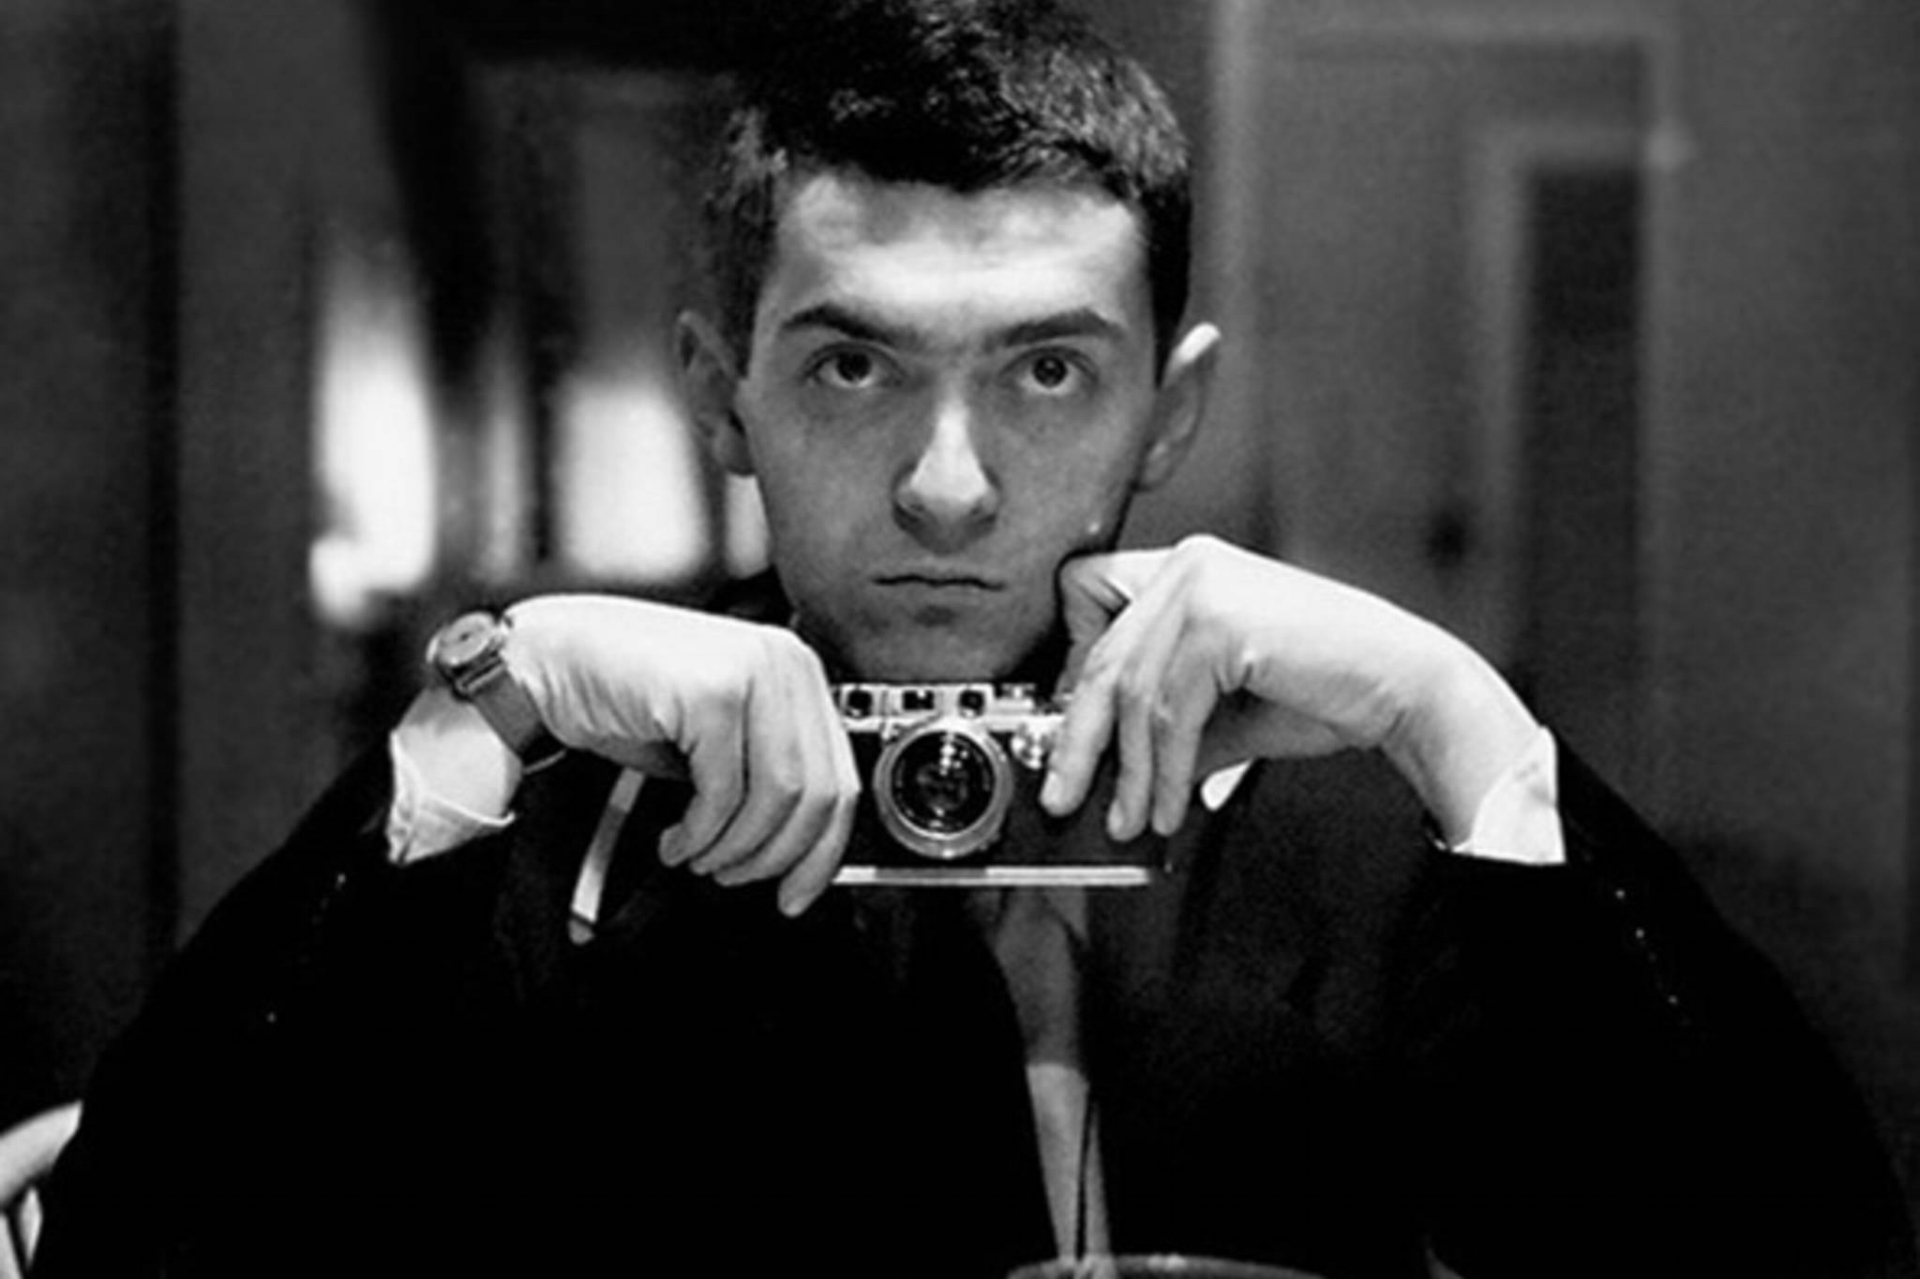 3728-2013109-Stanley-Kubrick.jpg-resize_then_crop-_frame_bg_color_FFF-h_1365-gravity_center-q_70-preserve_ratio_true-w_2048_.jpg